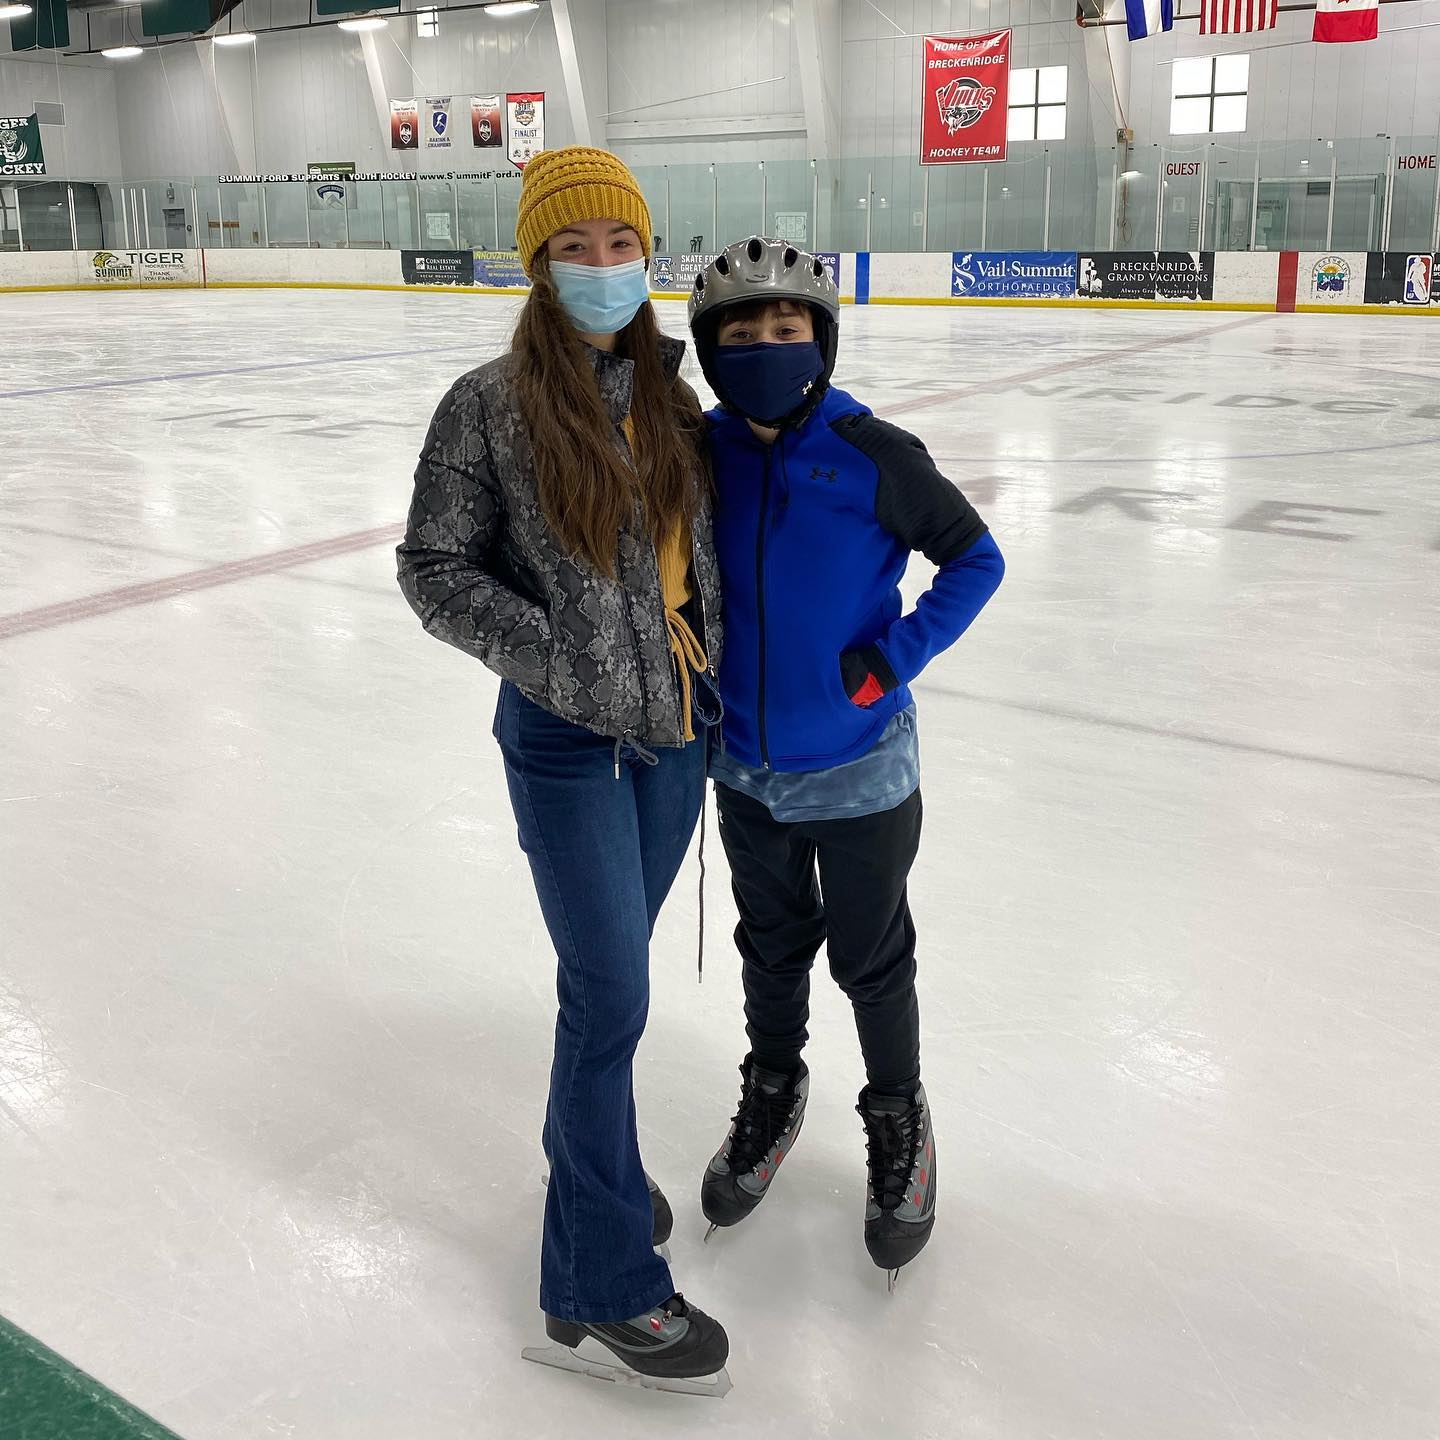 Indoor Ice skating at Breckinridge Colorado- so much fun! Open for public skating hours daily- check it out for some family fun! #indoorskating #familyfun #skatinginbreck